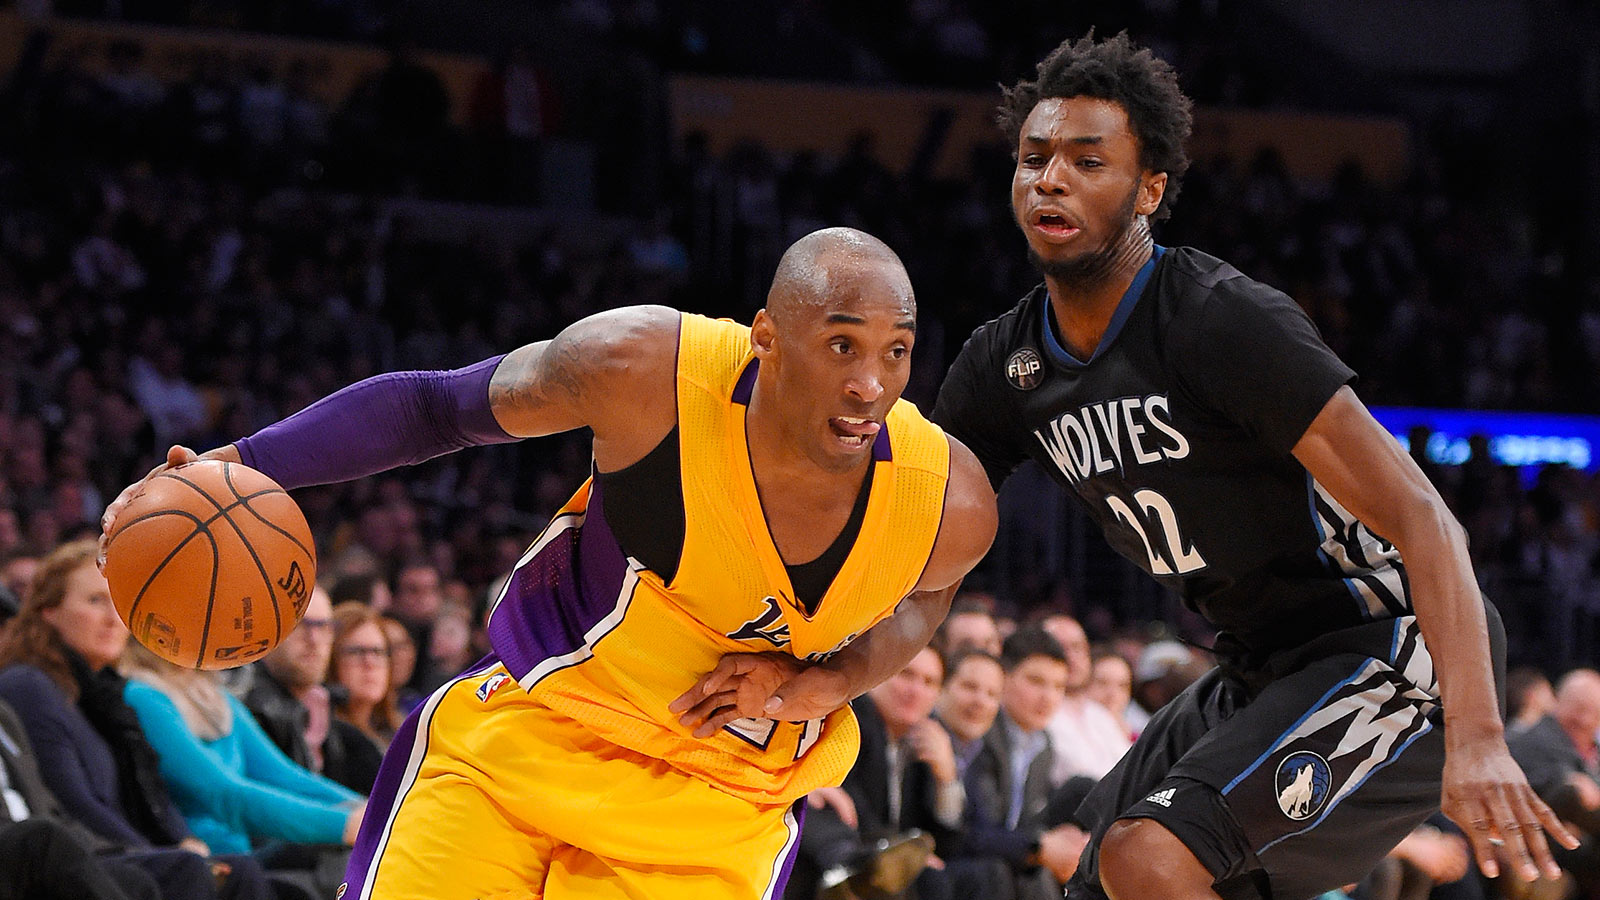 Kobe scores season-high 38, Lakers avoid longest losing streak in team history